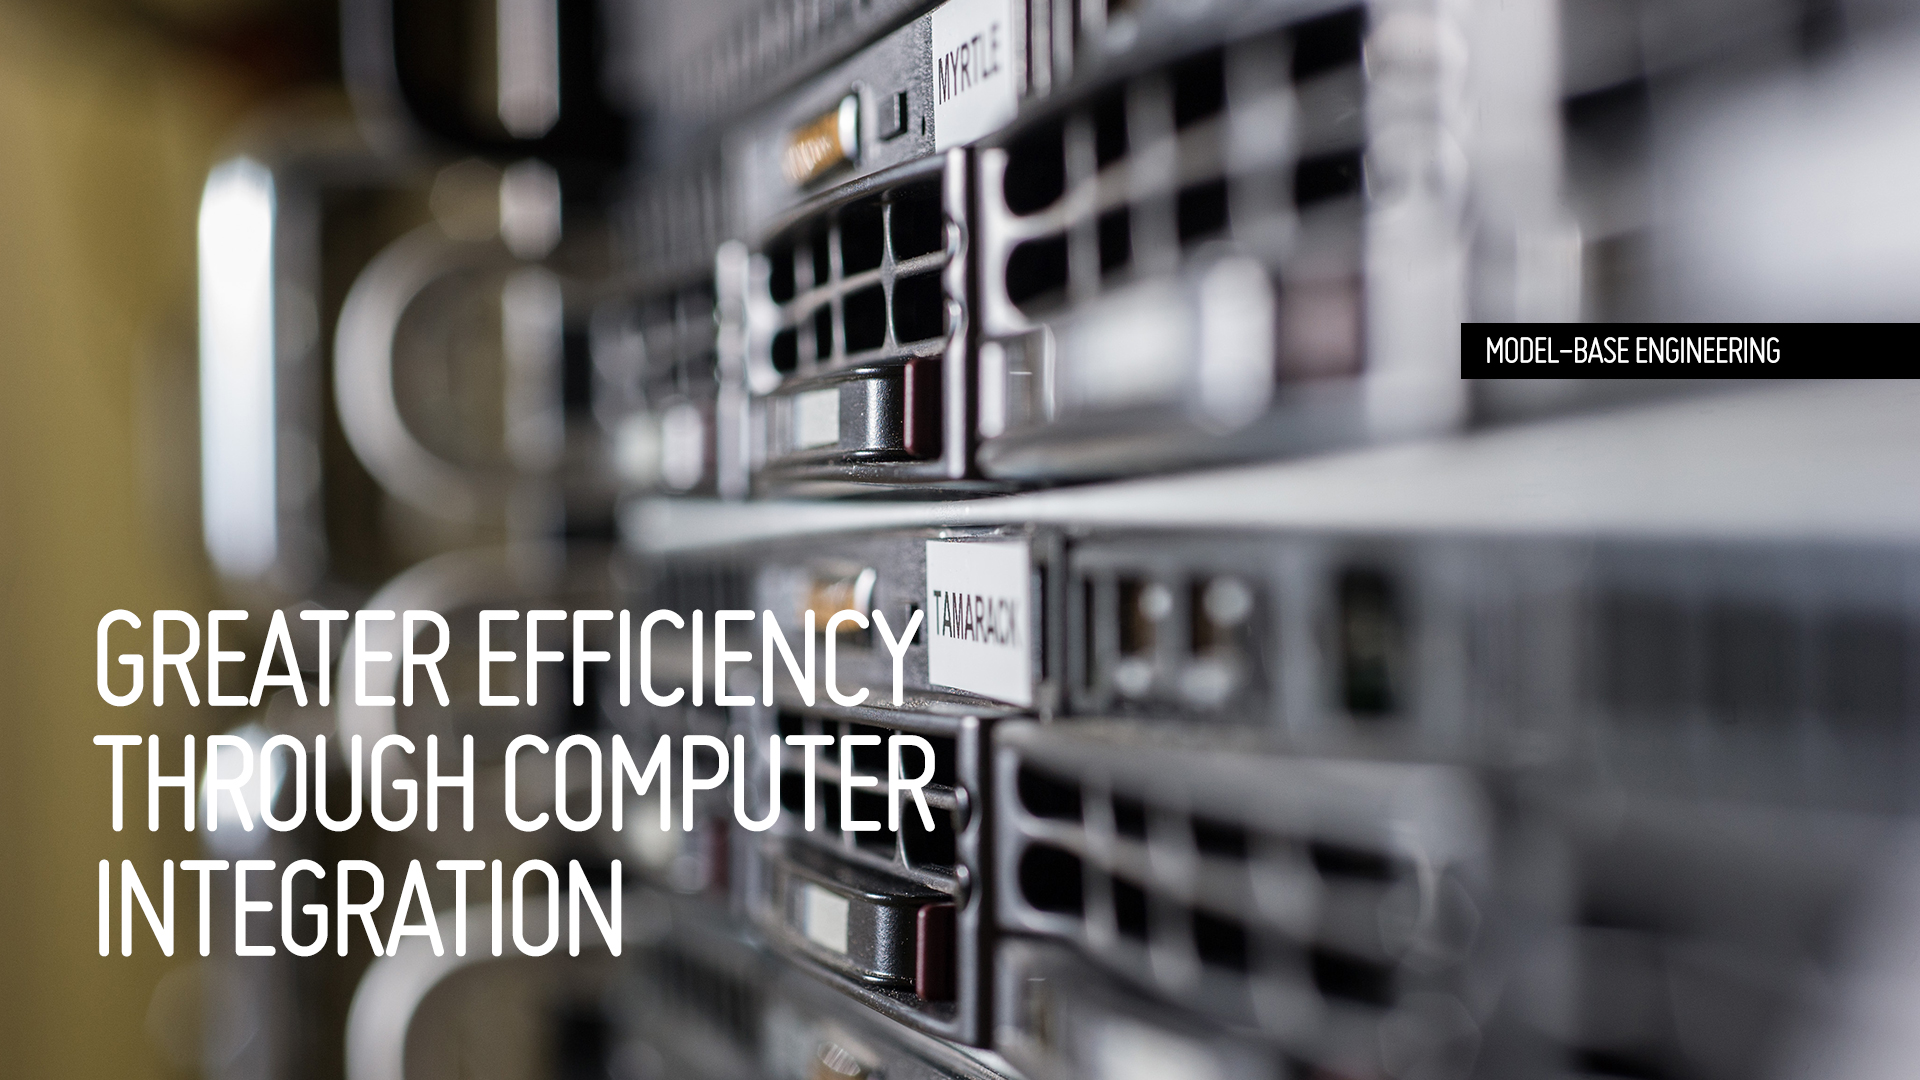 GREATER EFFICIENCY THROUGH COMPUTER INTEGRATION